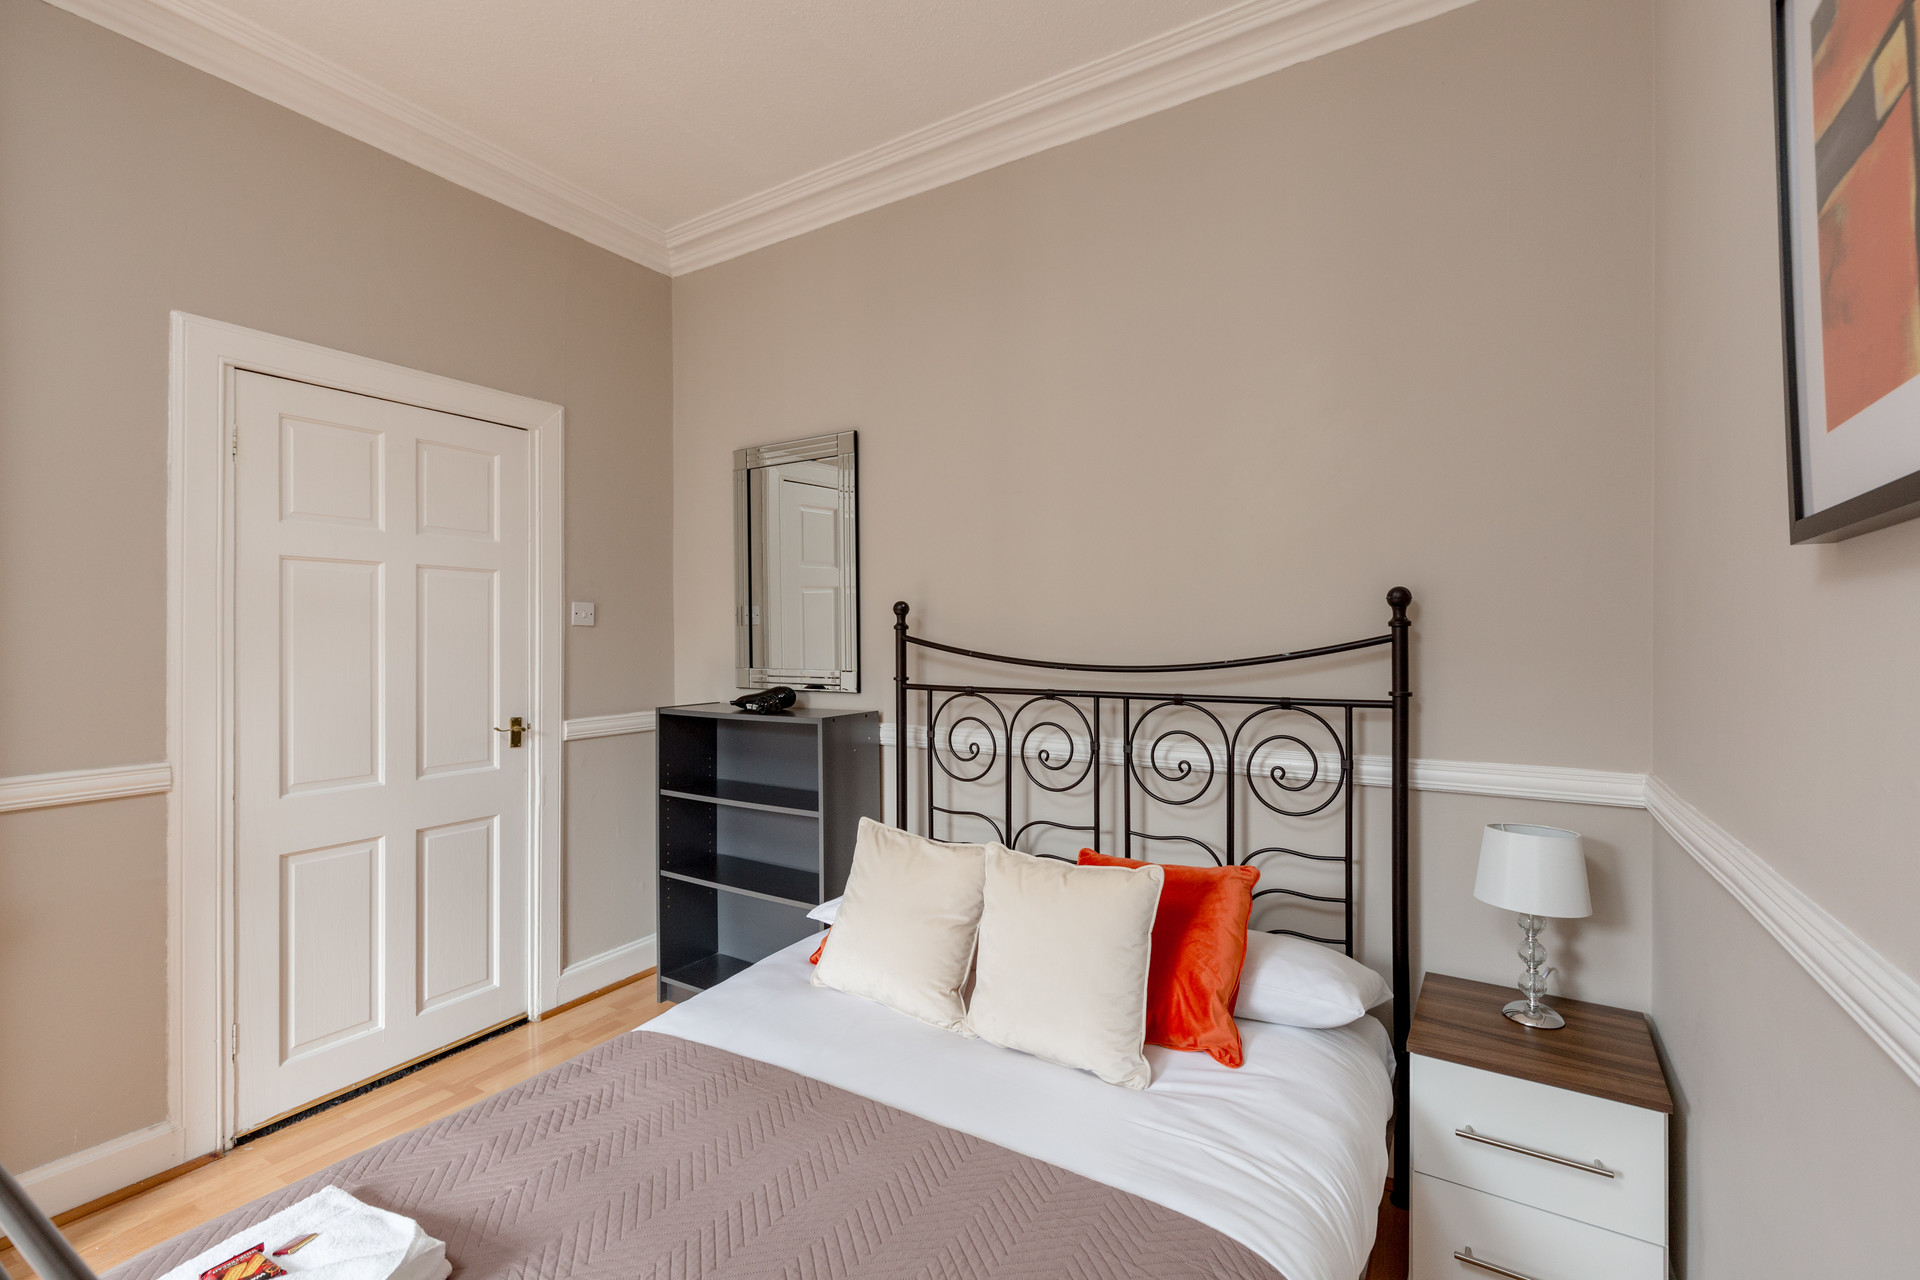 1 bedroom apartment available in january on st leonard 39 s. Black Bedroom Furniture Sets. Home Design Ideas